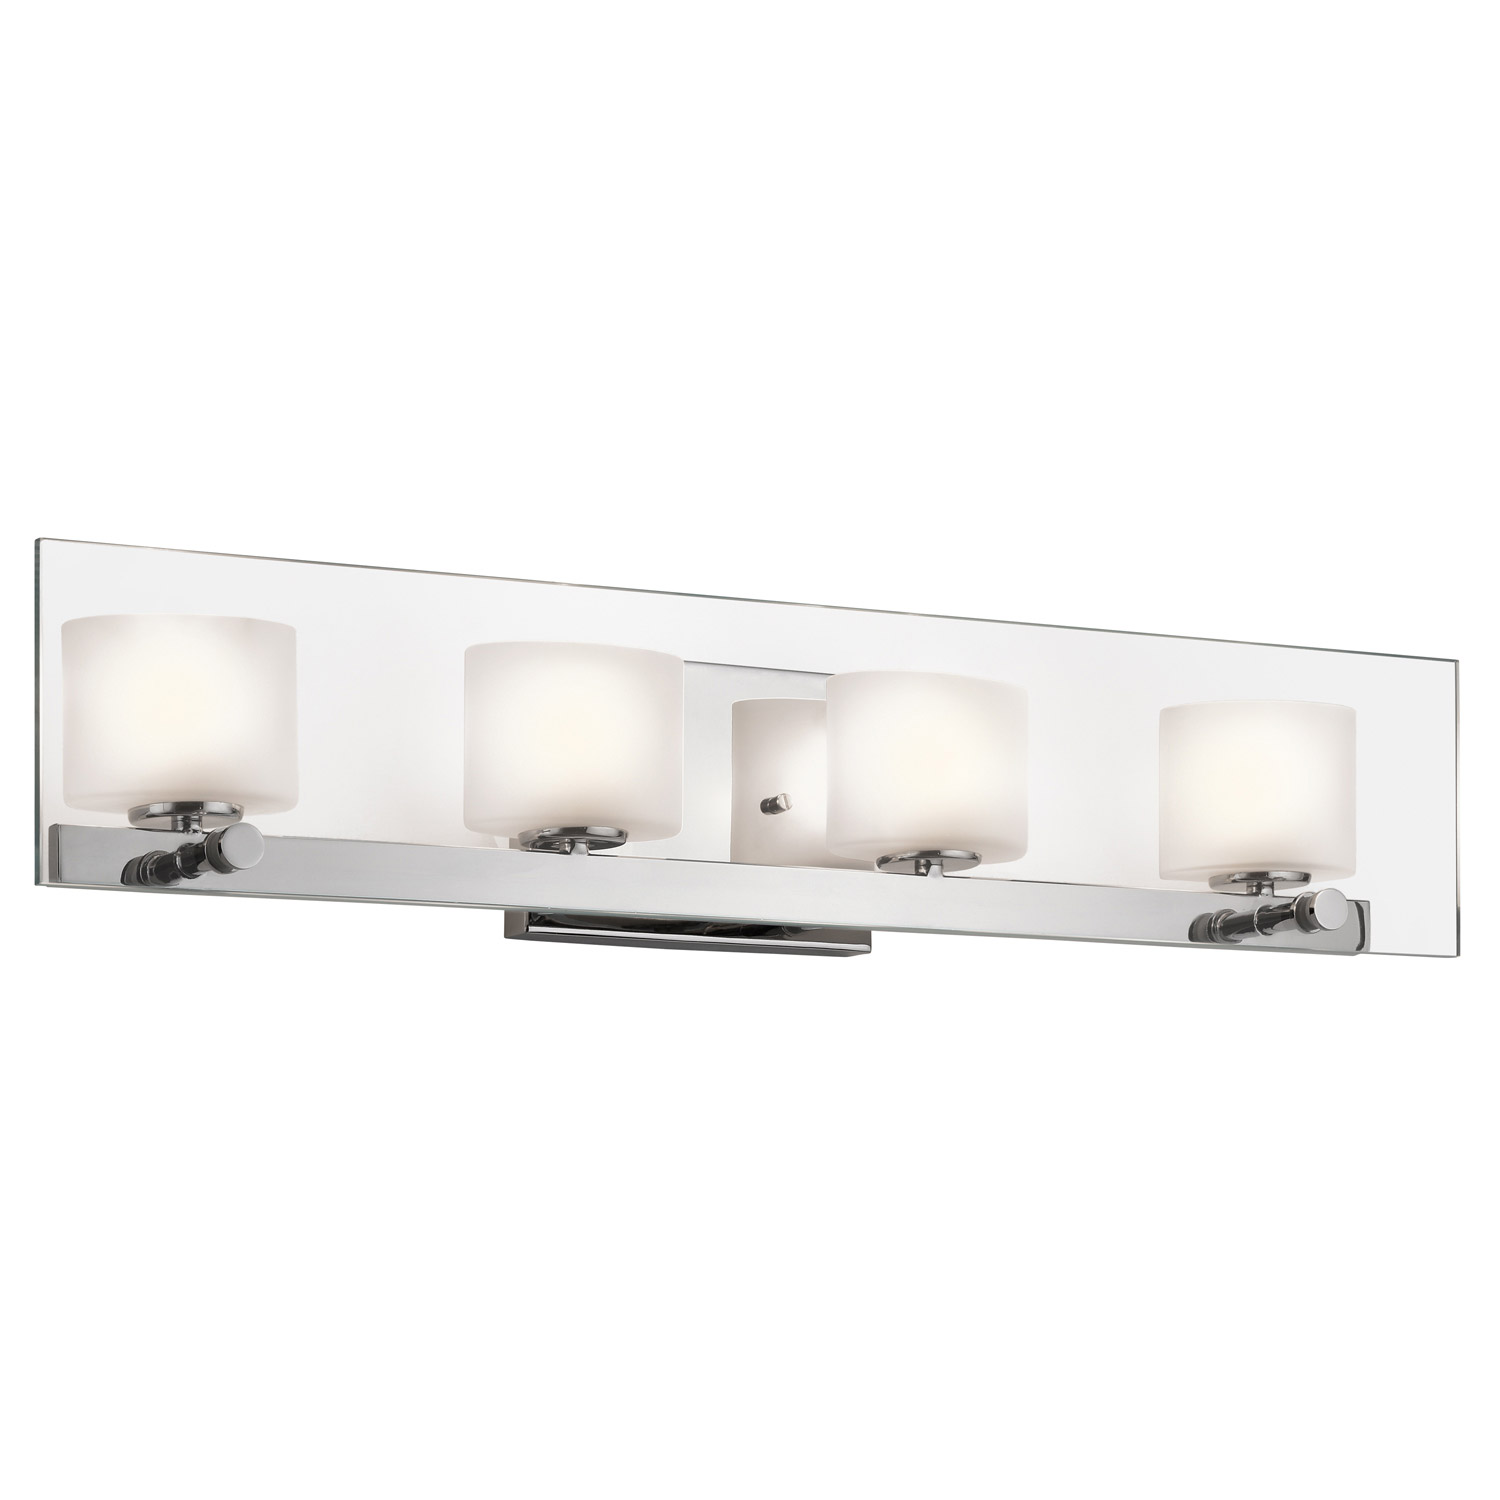 Bathroom Vanity Halogen Lights : Kichler 45173CH Como Halogen Bathroom Vanity Light